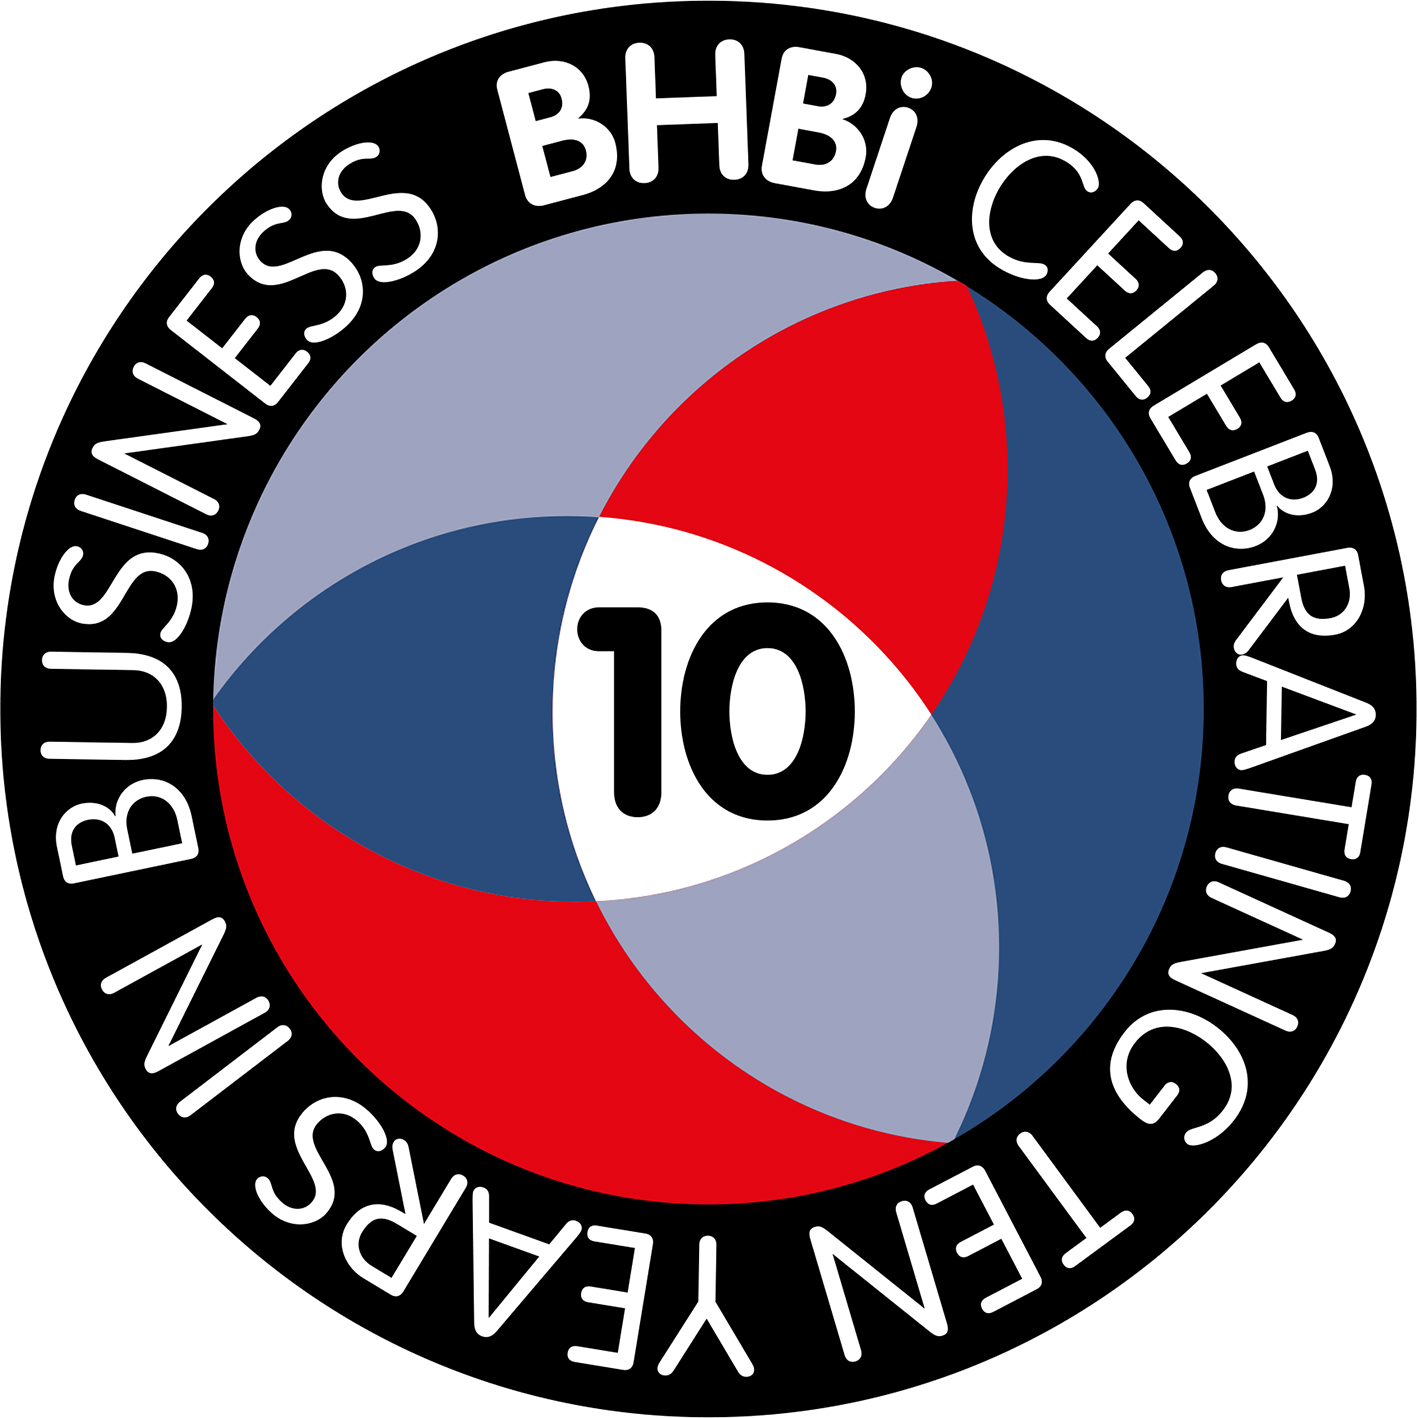 BHBi 10th Anniversary in business